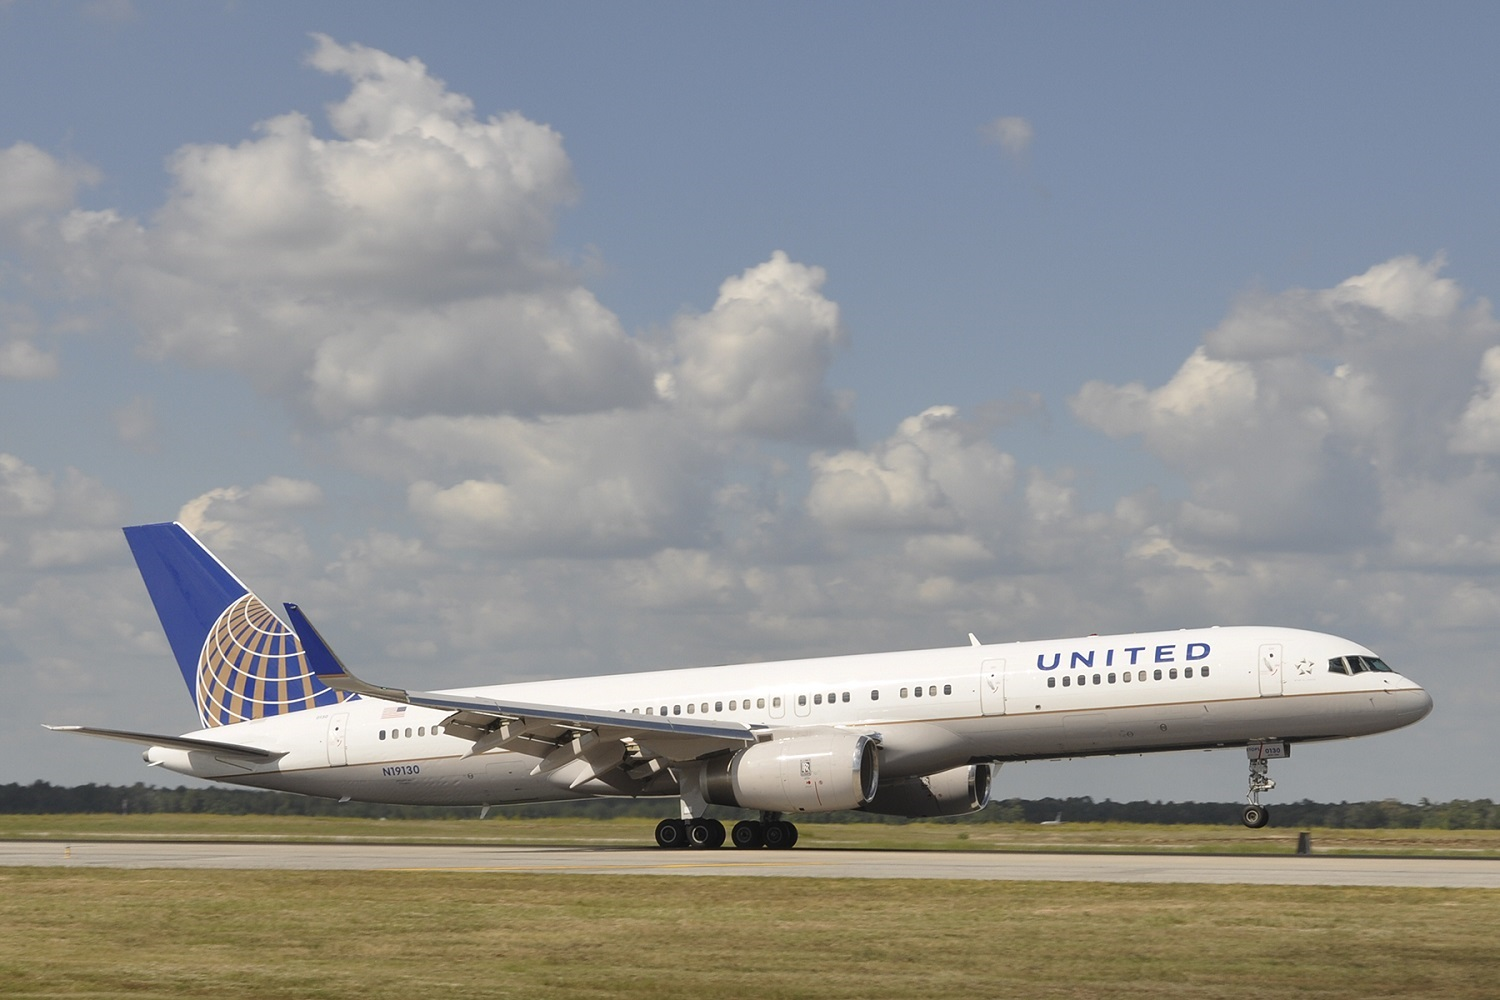 United Airlines Boeing 757 take off